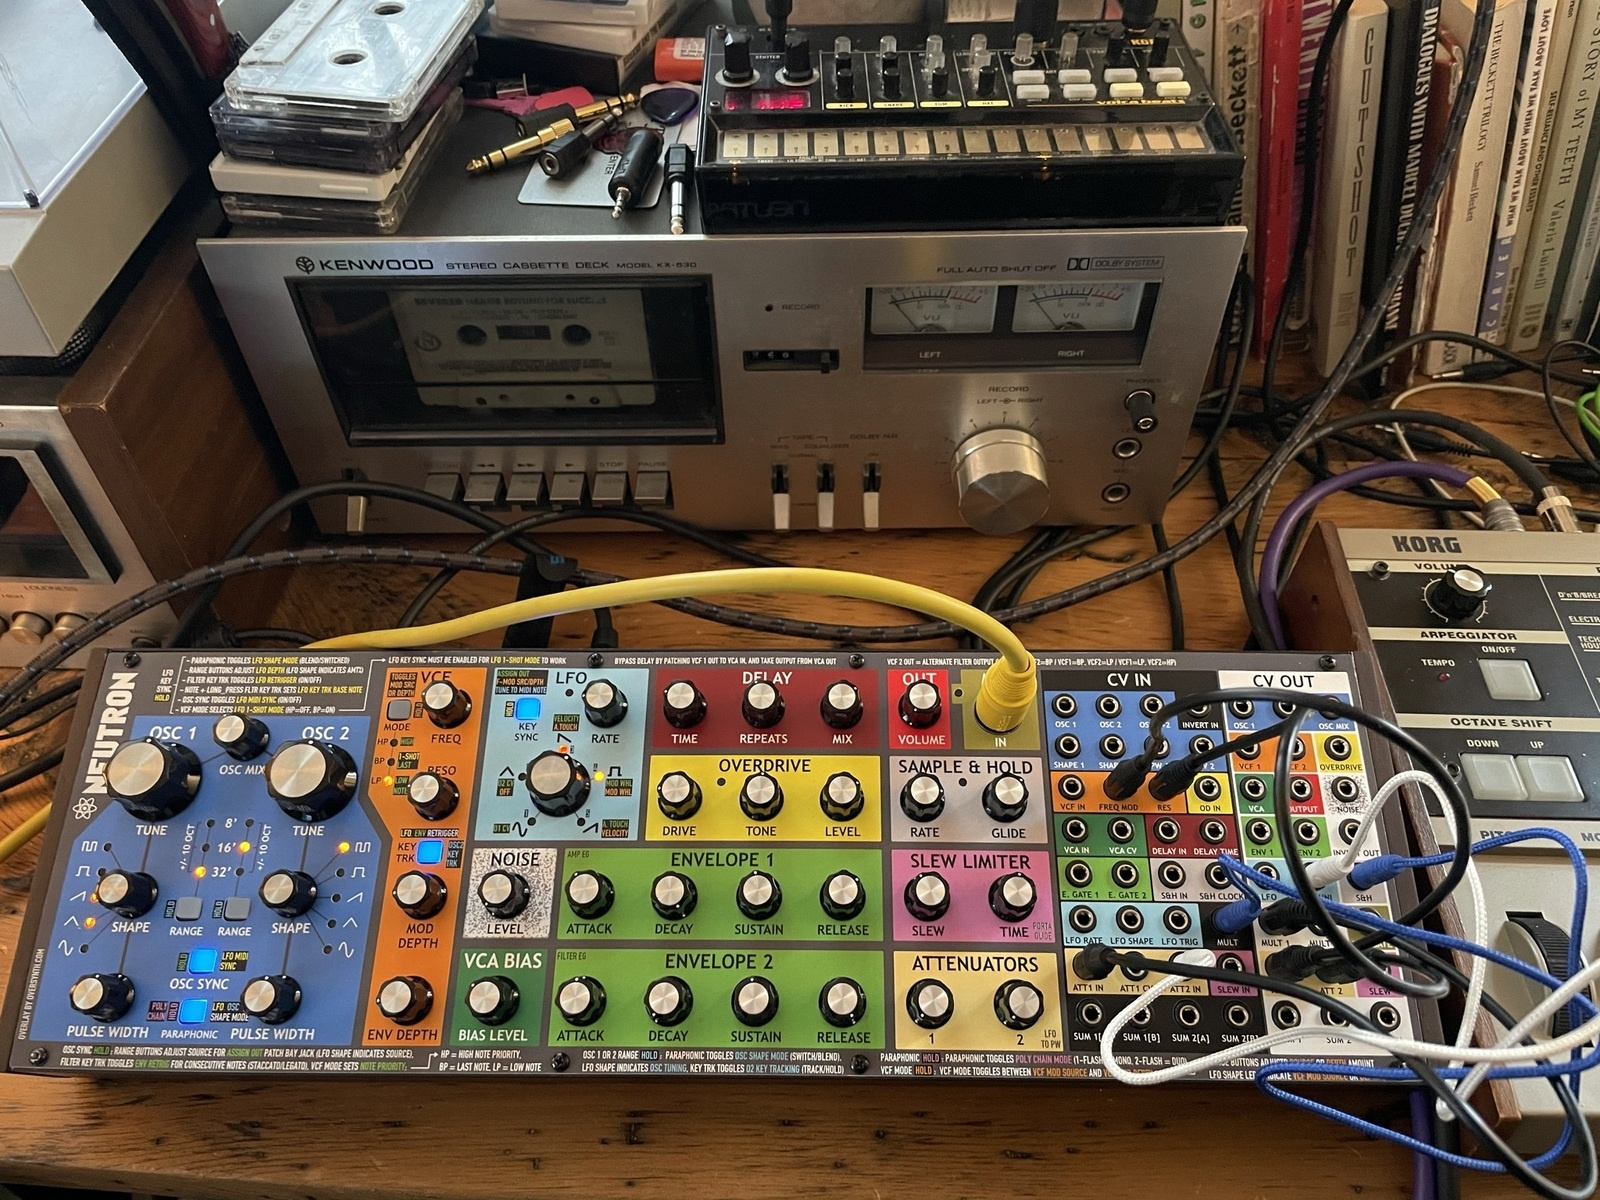 Photo of Korg MicroKORG Synthesizer/Vocoder and more gear in a closeup and synths